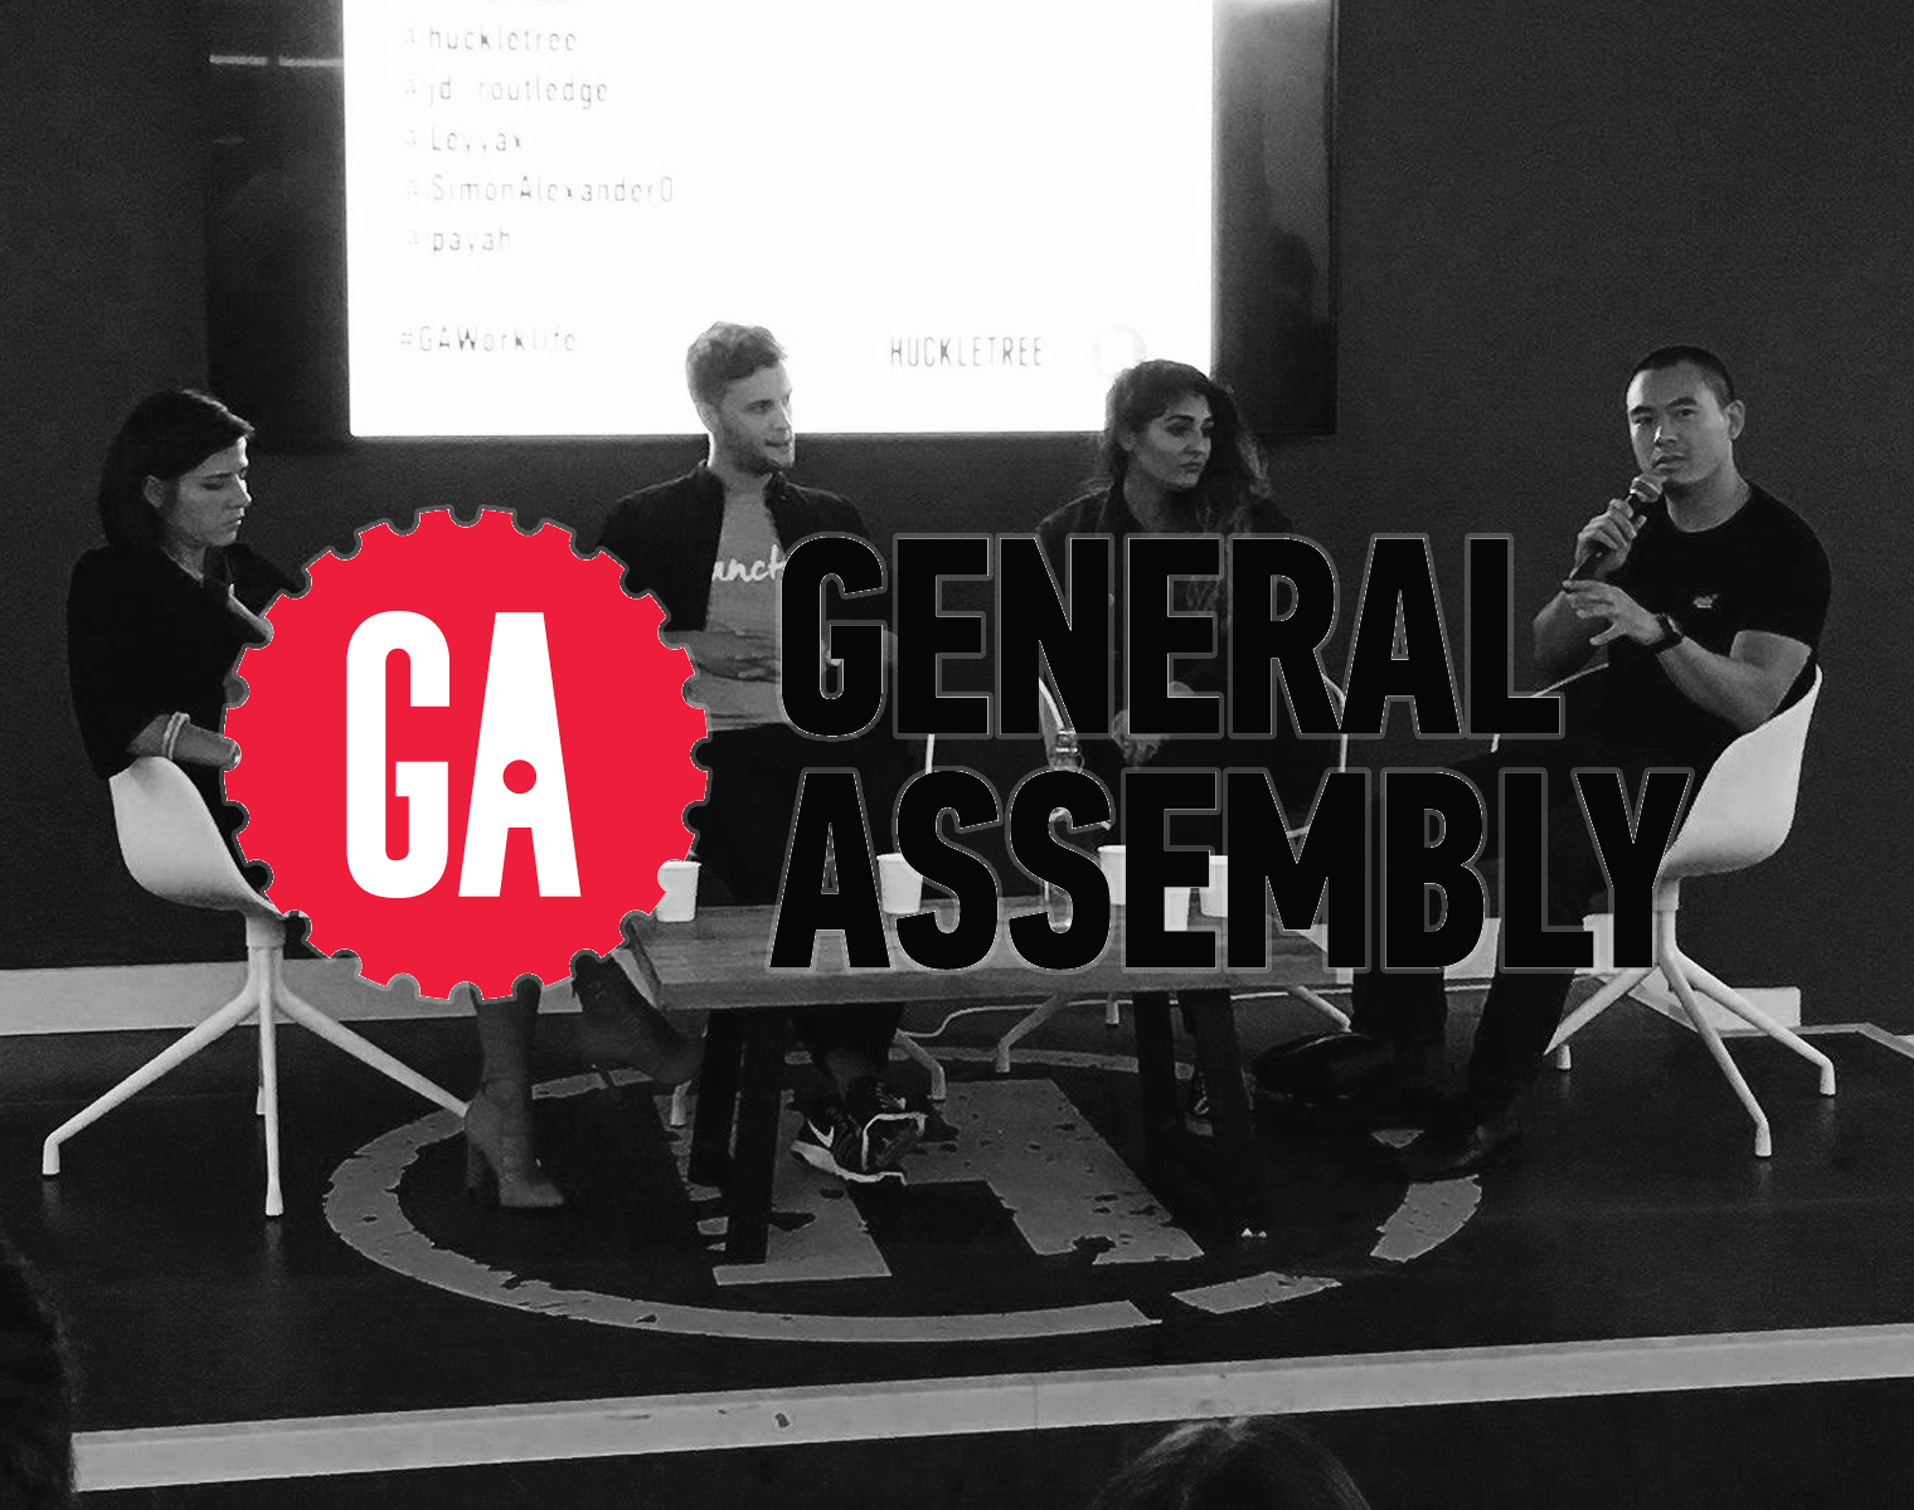 GENERAL ASSEMBLY -  EVENT  We spoke on a General Assembly panel around Work/Life balance alongside: James Routledge - Founder of Sanctus, Simon Alexander Ong - Life Coach & Business strategist and hosted by Paulina Sygulska Tenner - Founder of GrantTree.